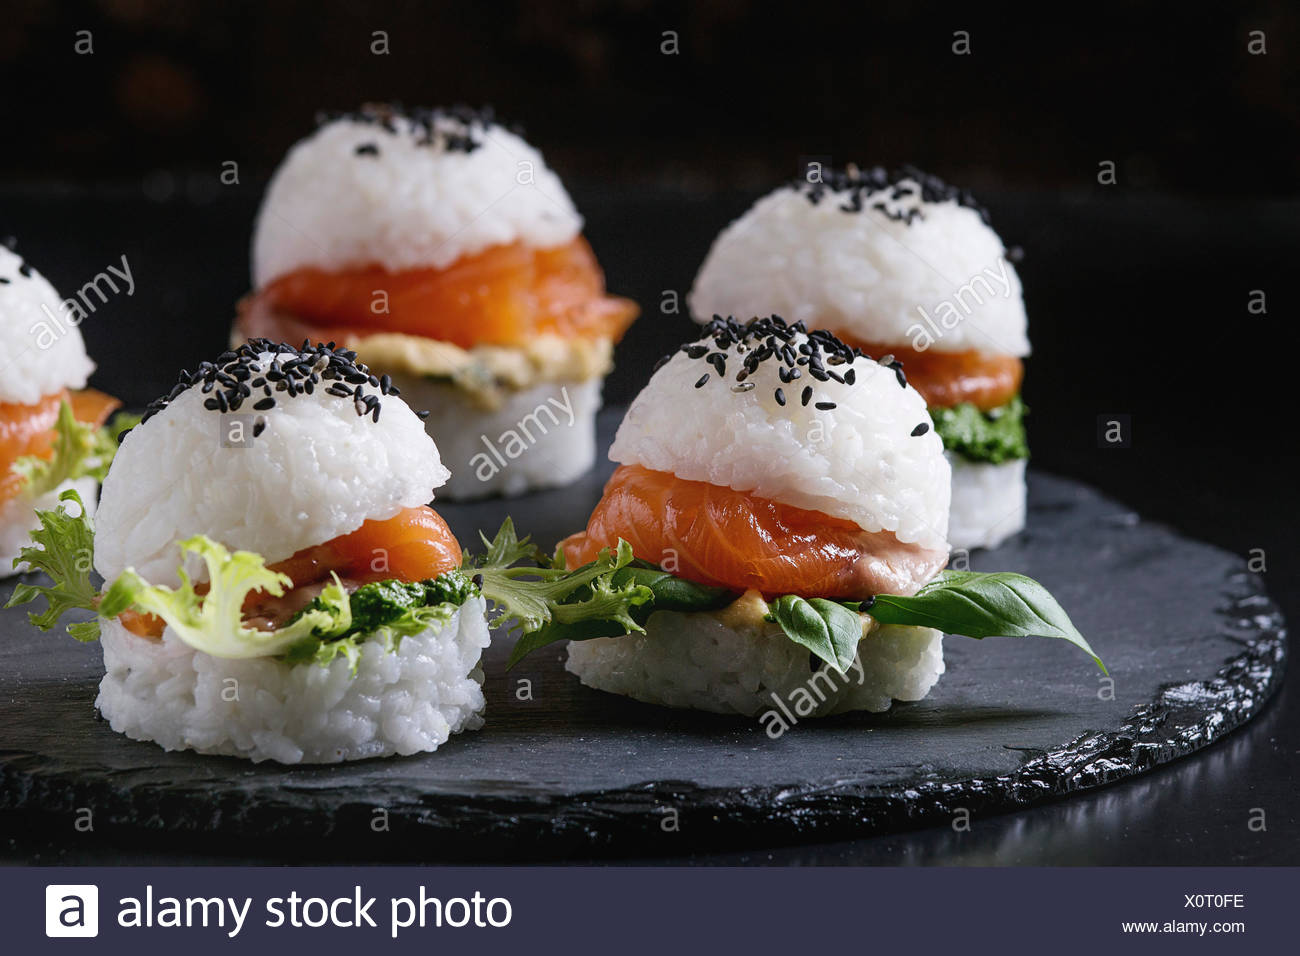 Mini rice sushi burgers with smoked salmon, green salad and sauces, black sesame served on slate stone board over black background. Modern healthy foo - Stock Image